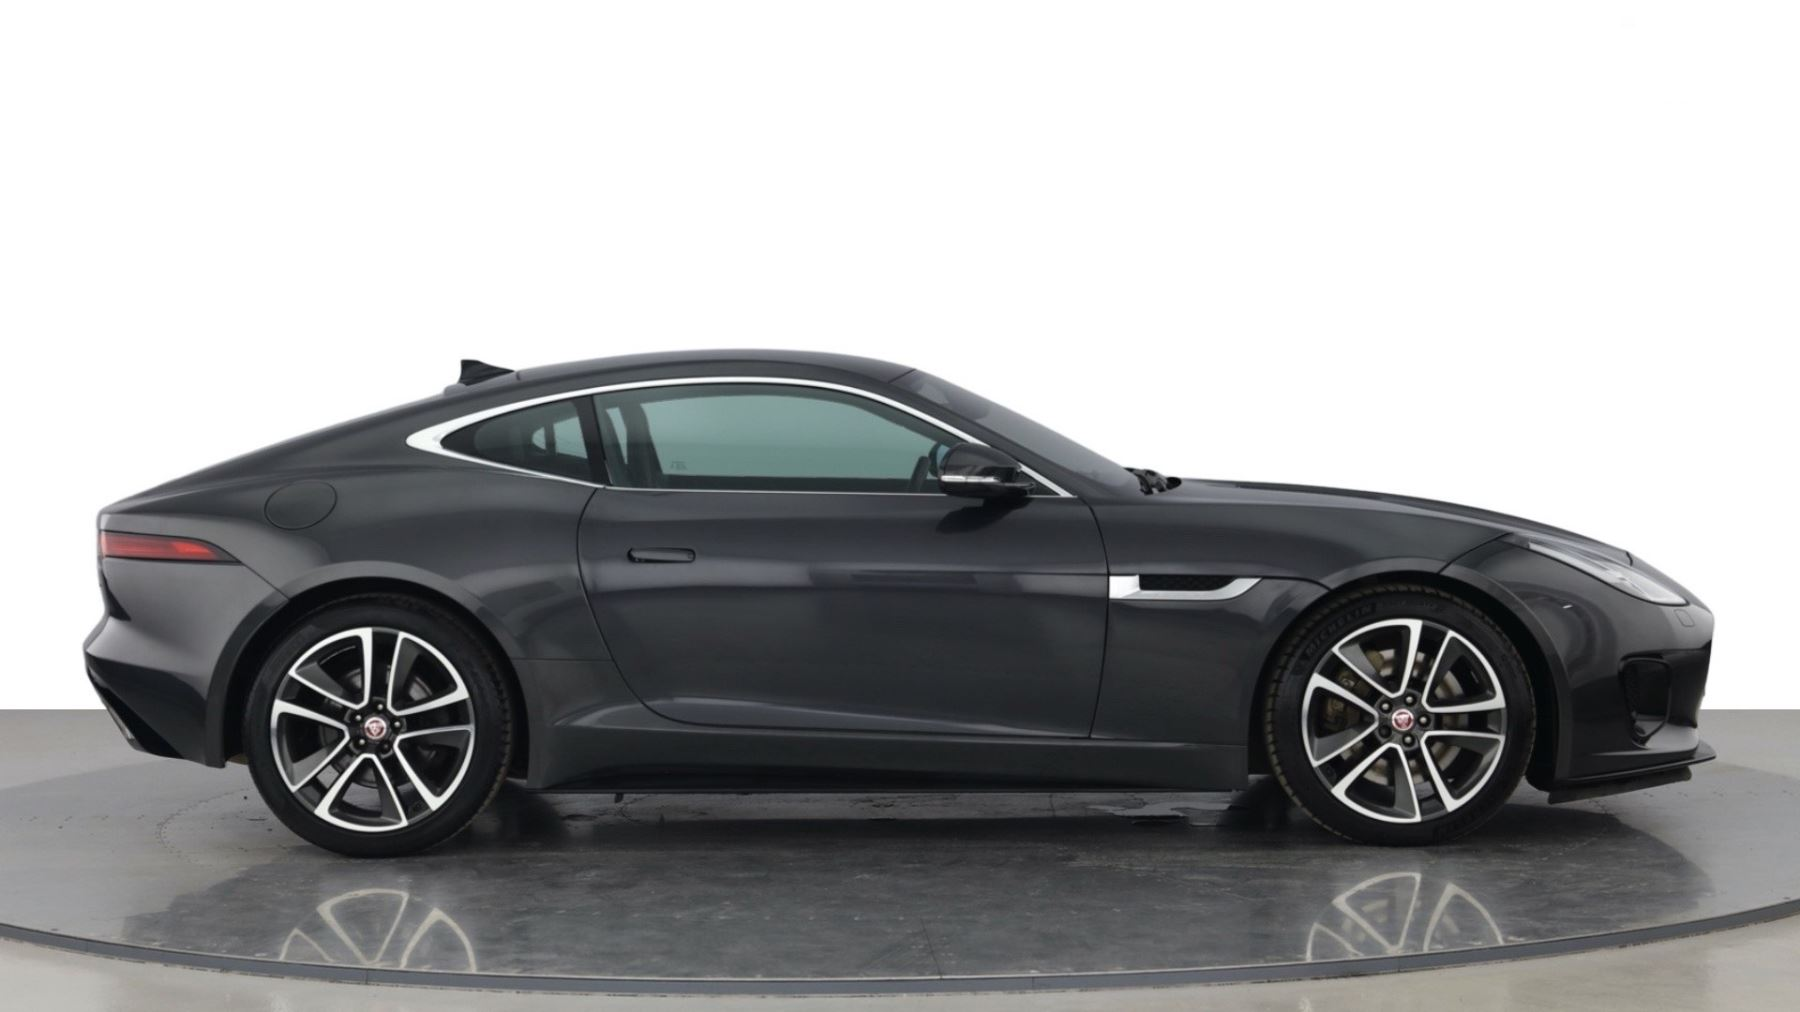 Jaguar F-TYPE 3.0 Supercharged V6 R-Dynamic with Panoramic Sunroof and Meridian Surround Sound image 8